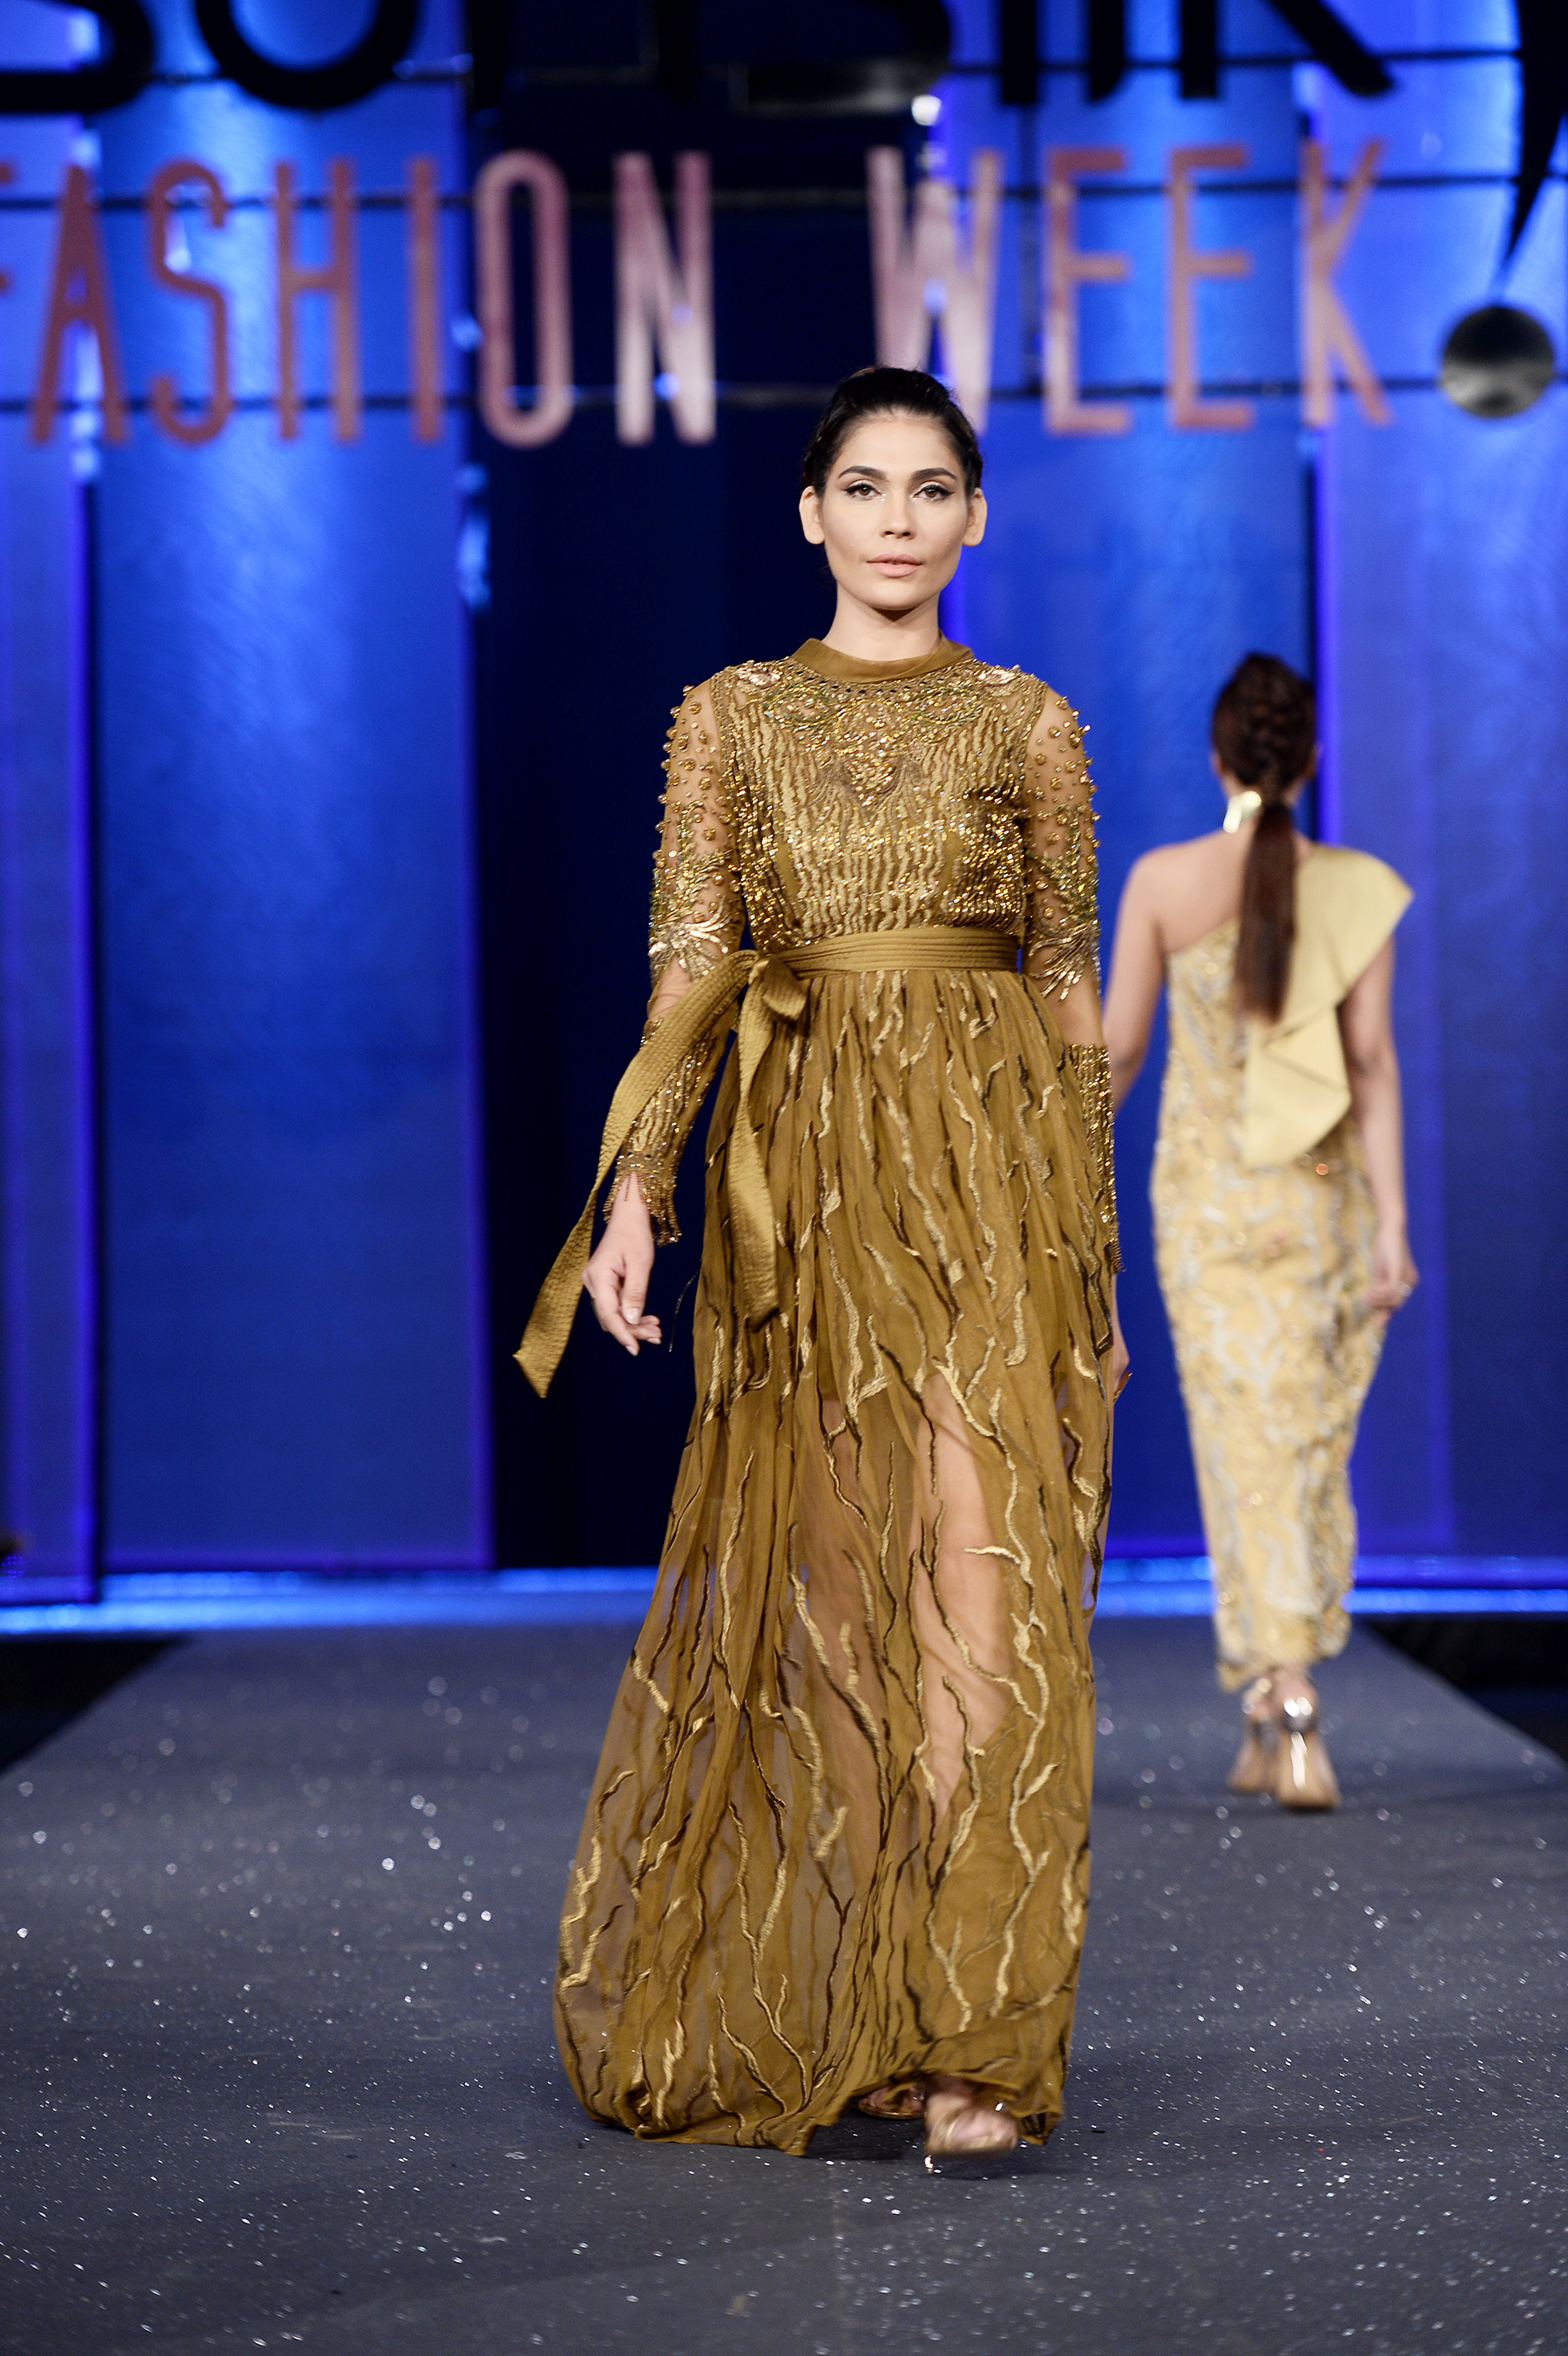 Tena Durrani - PFDC Sunsilk Fashion Week 2017, Photography: Faisal Farooqui and his team at Dragonfly